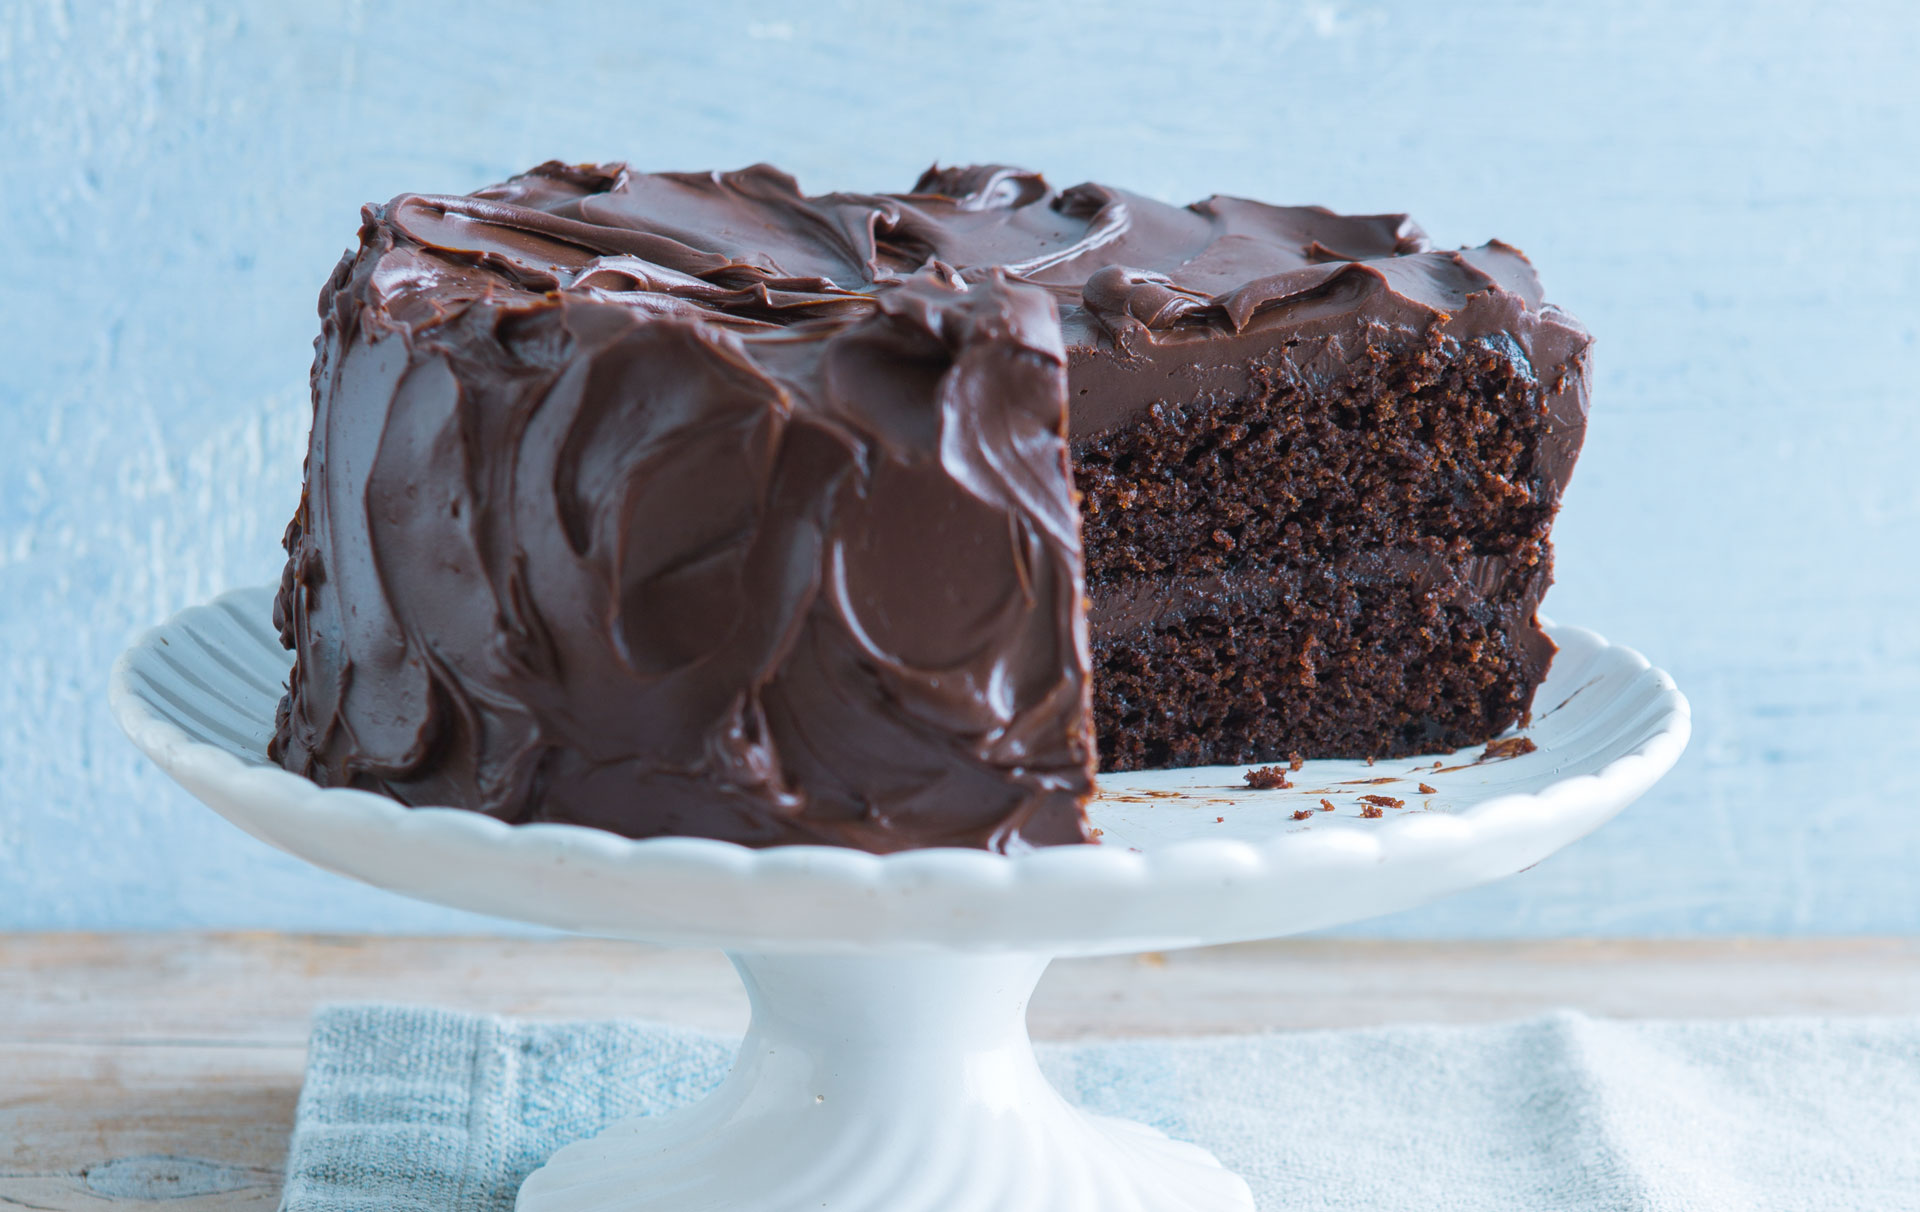 Chocolate Sponge Cake Dessert Recipes Goodtoknow